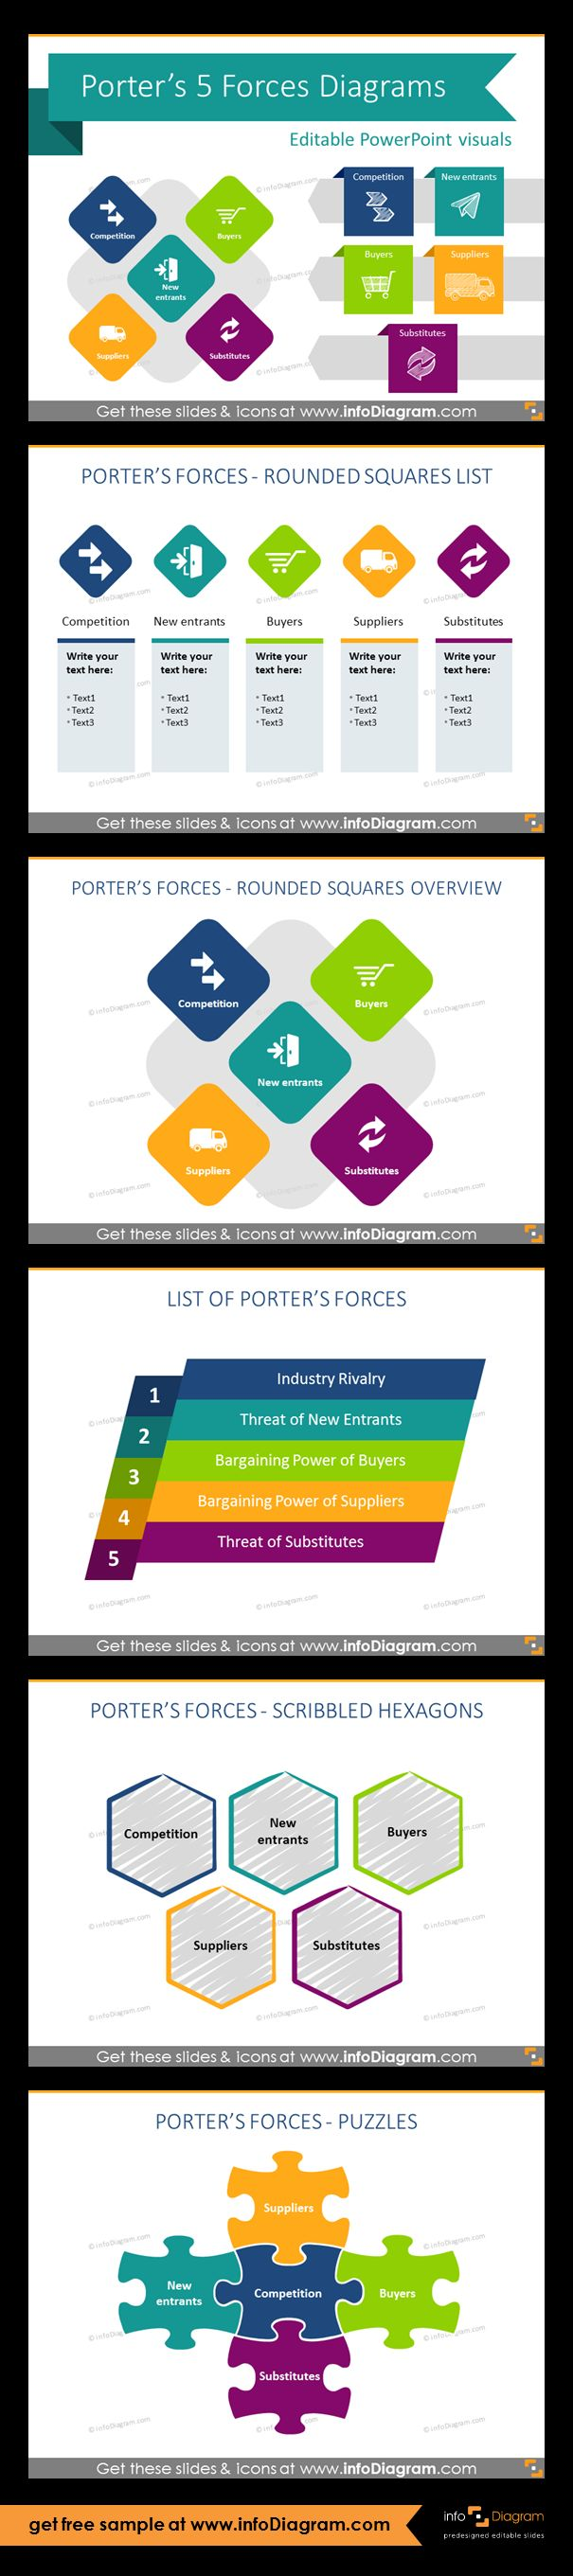 Collection of Porter's Forces diagrams as pre-designed PowerPoint slides. Set of various diagrams representing Porter's five forces: buyers, suppliers, competition, new entrants and product substitutes. Presentation template suitable for marketing and business development presentations. Fully editable style. Size and colors easy to adjust using PowerPoint editor.